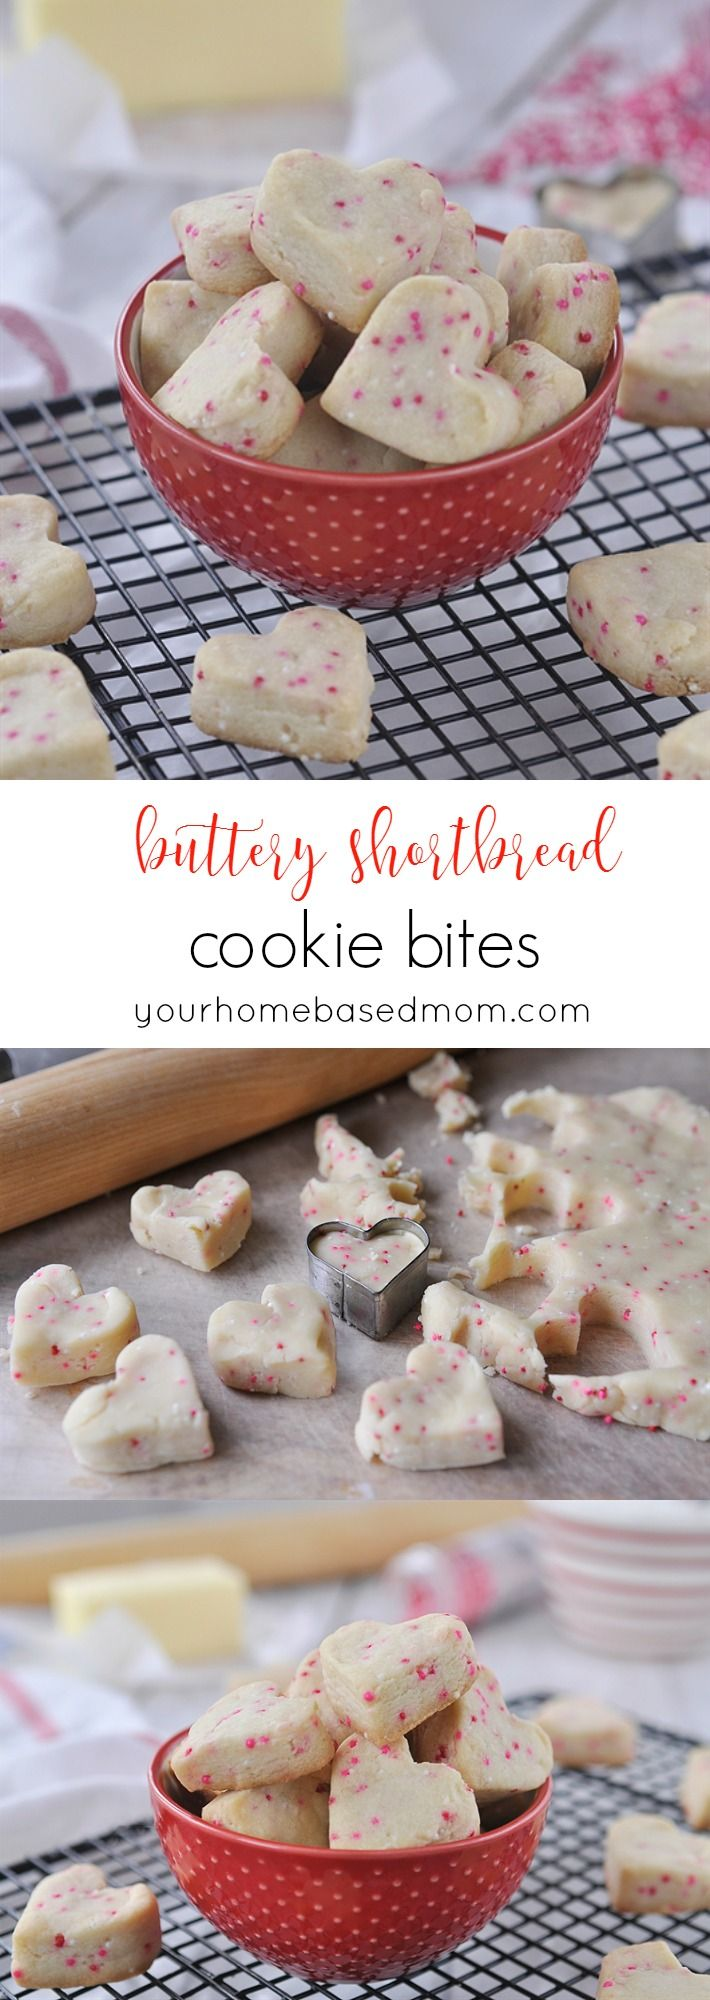 Buttery Shortbread Cookie Bites - cute , sweet and litte. Just pop a couple in your mouth!